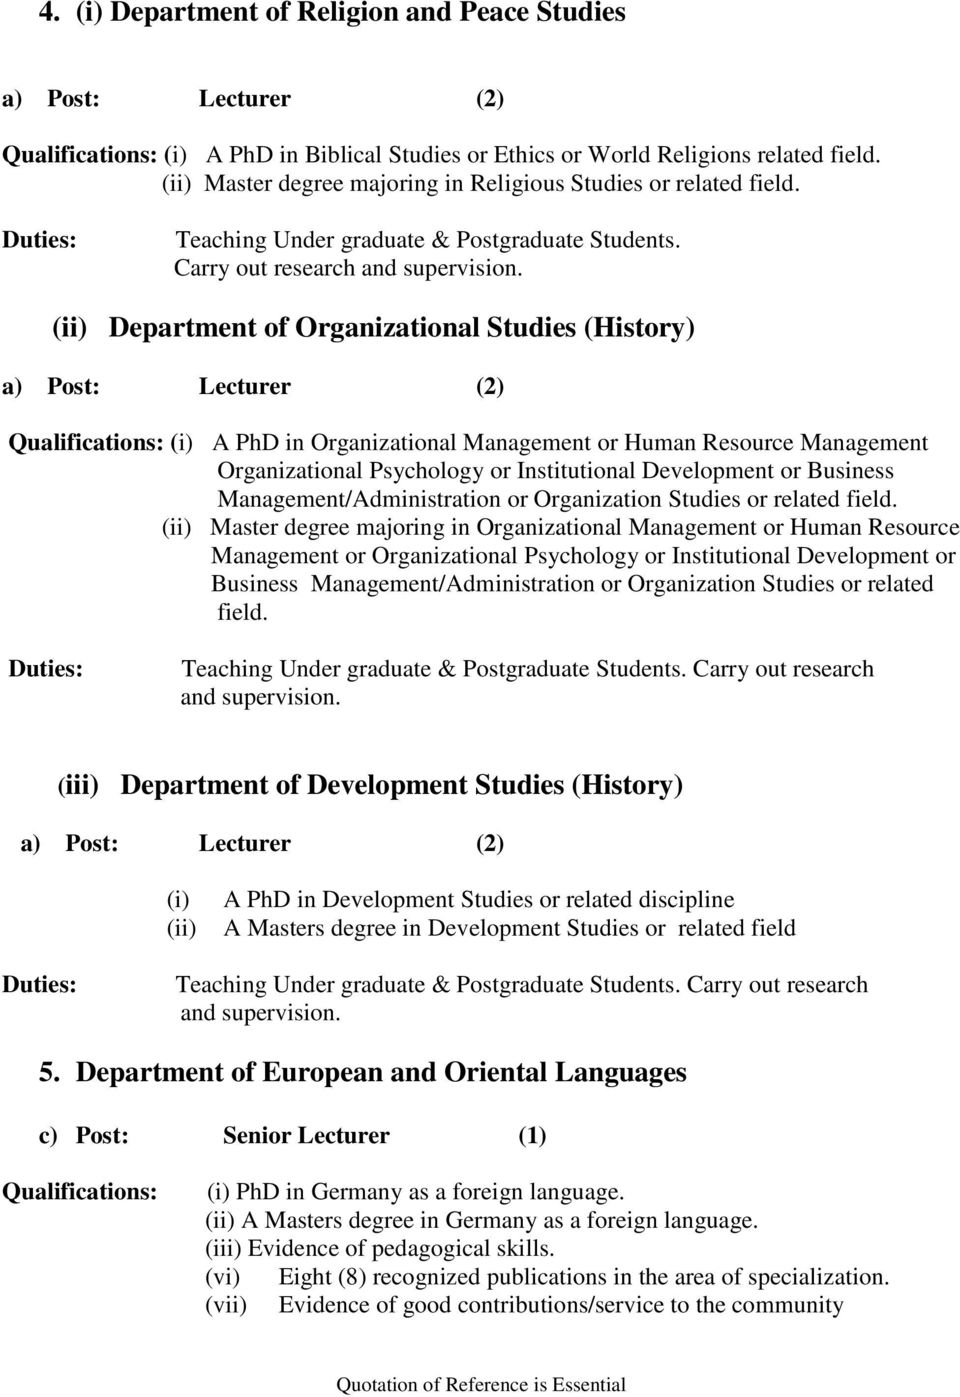 (ii) Department of Organizational Studies (History) a) Post: Lecturer (2) (i) A PhD in Organizational Management or Human Resource Management Organizational Psychology or Institutional Development or